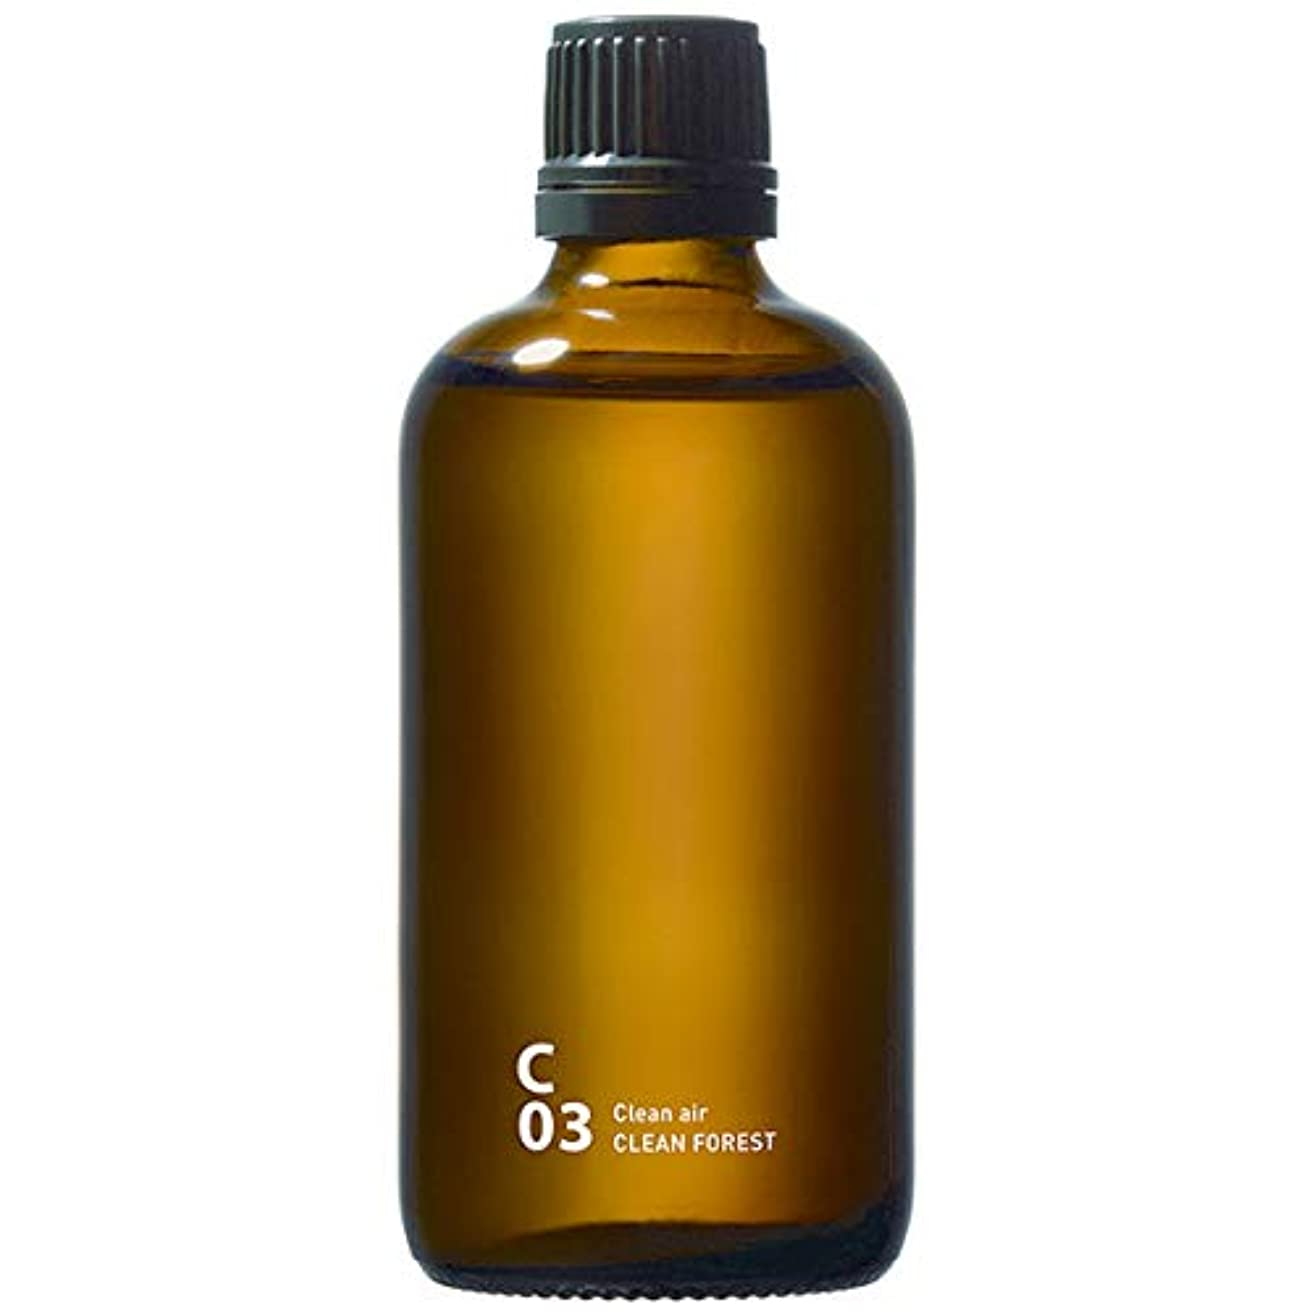 C03 CLEAN FOREST piezo aroma oil 100ml